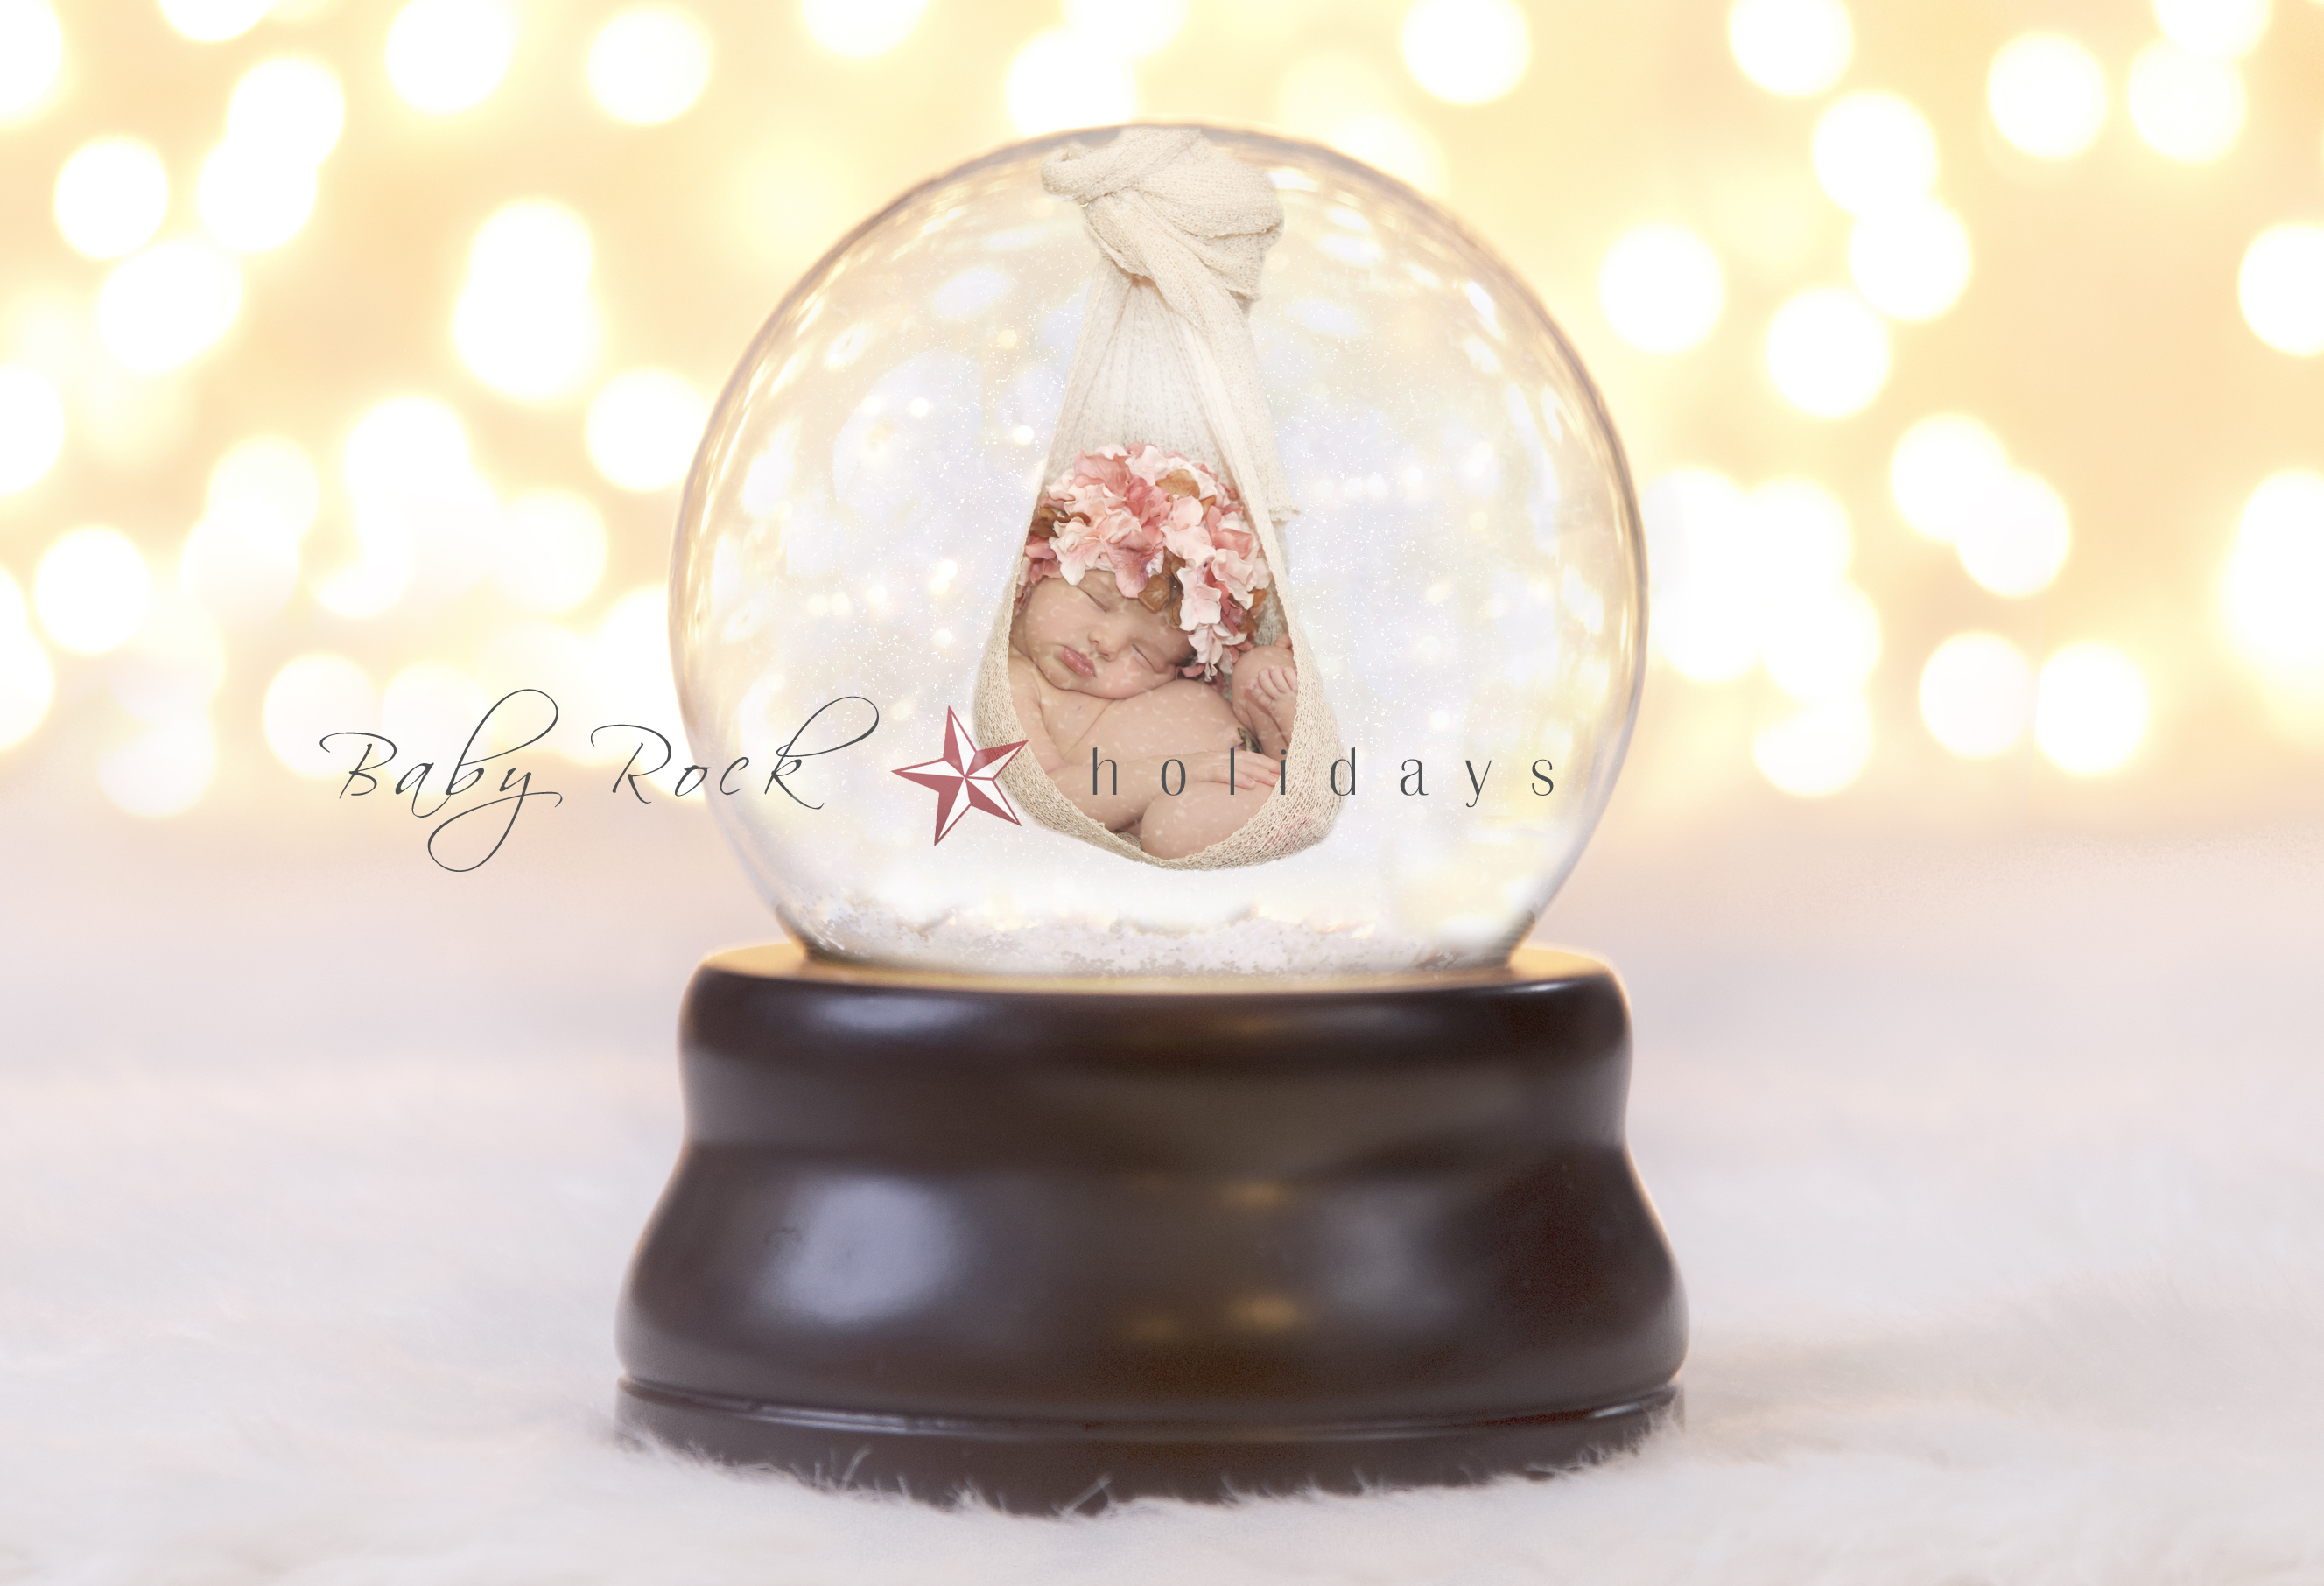 prophoto4 templates - snowglobes are here baby rock photography